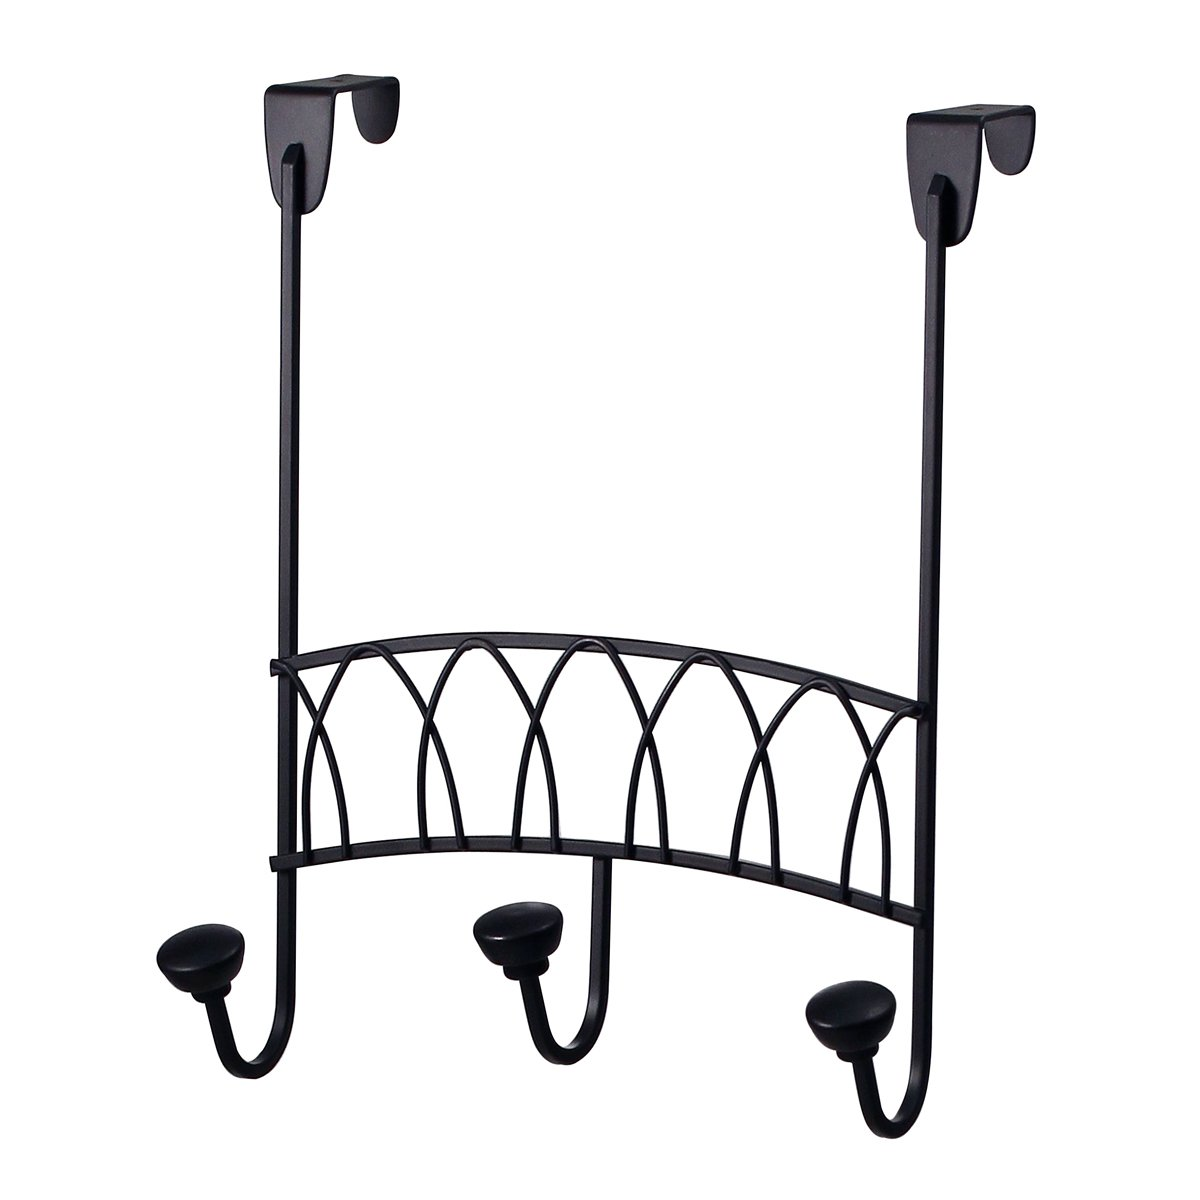 Spectrum Diversified Twist Over The Door 3 Hook Rack, Black 88810